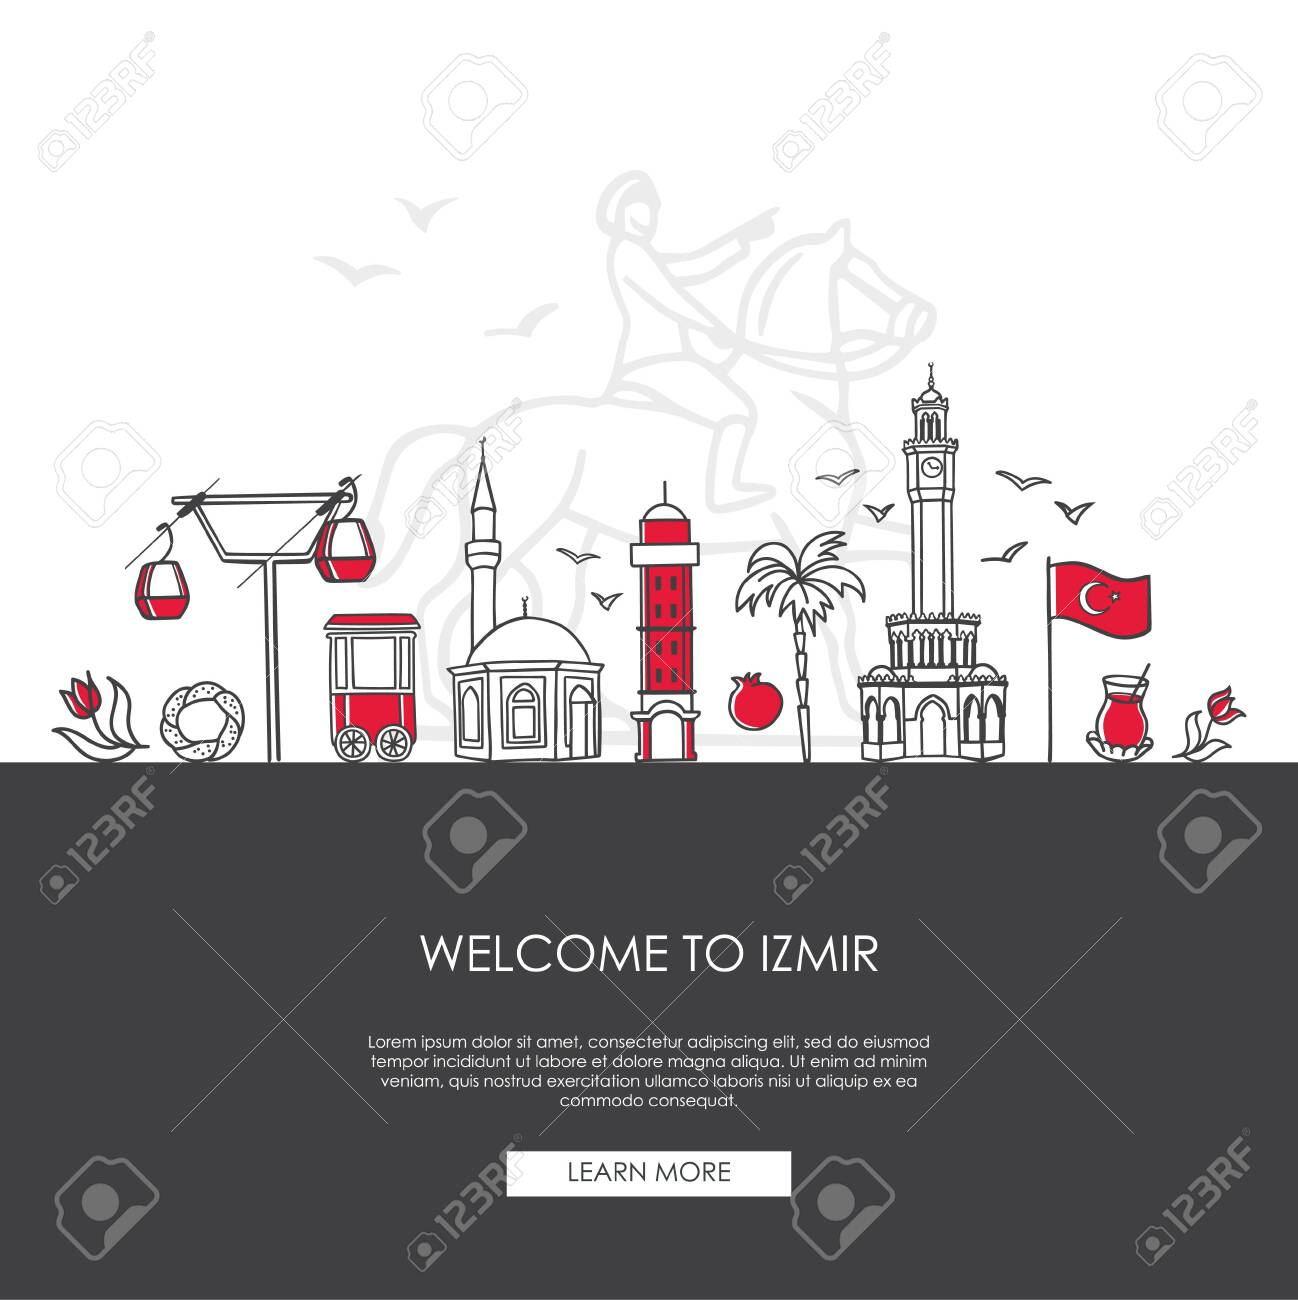 Vector Illustration Welcome To Izmir Turkey Famous Turkish Royalty Free Cliparts Vectors And Stock Illustration Image 142779361